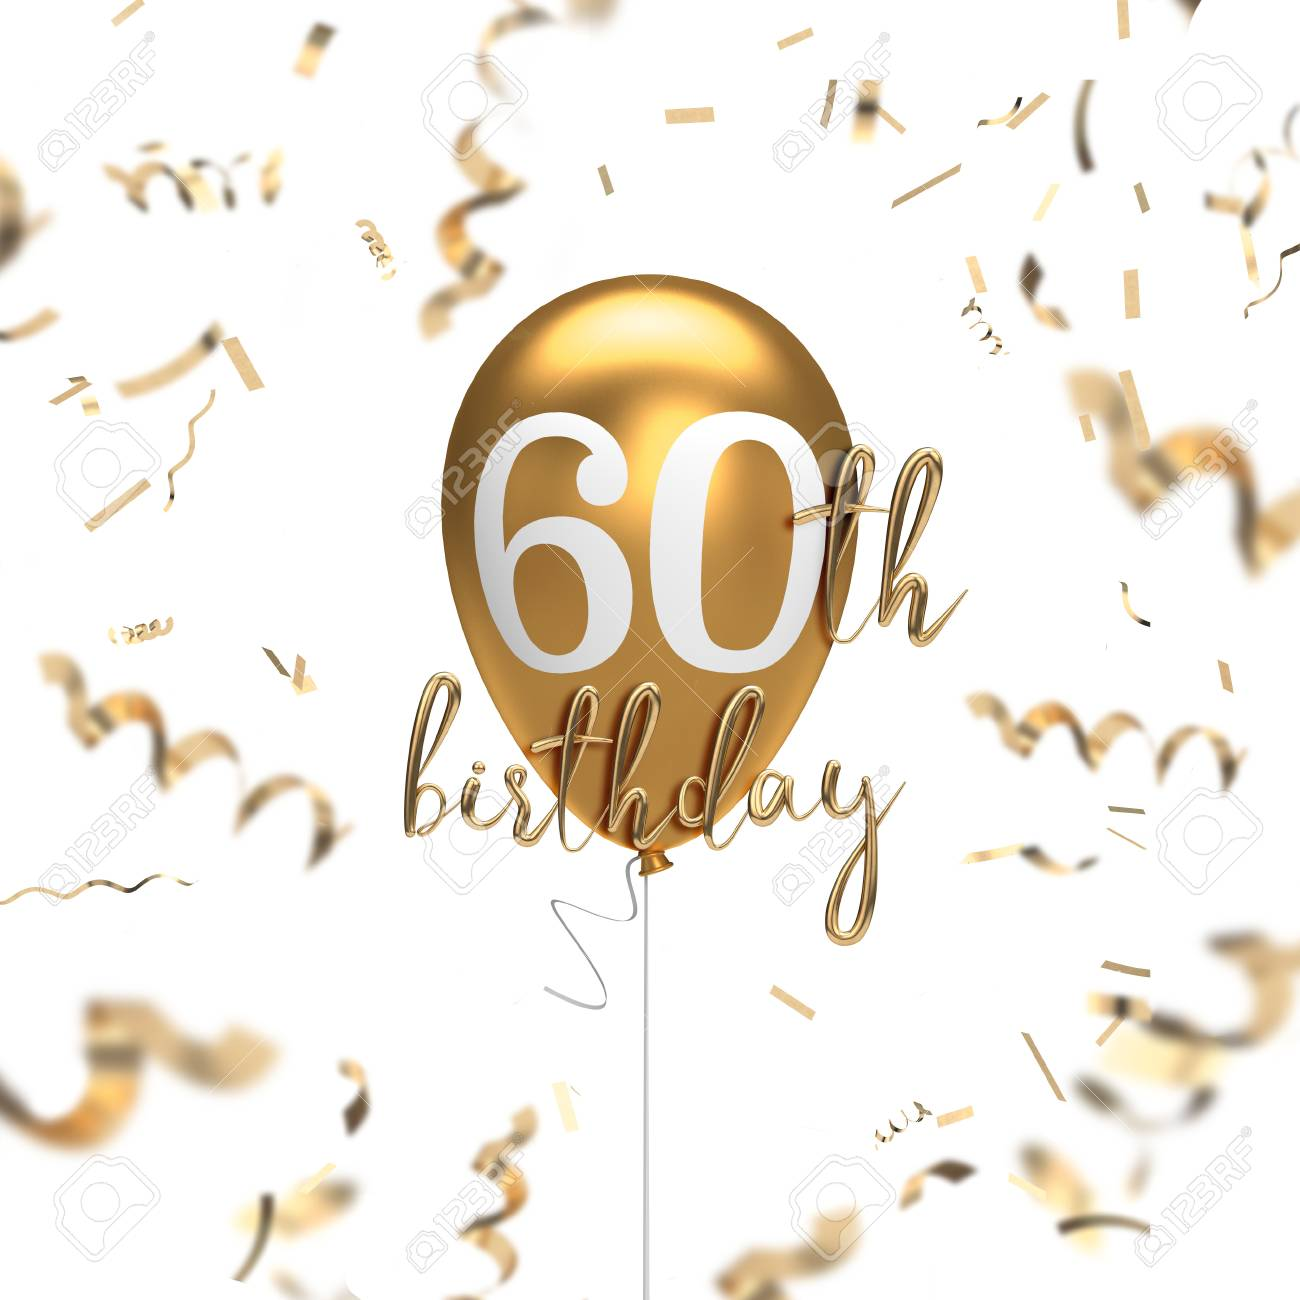 Happy 60th Birthday Gold Balloon Greeting Background 3d Rendering Stock Photo Picture And Royalty Free Image Image 105639677